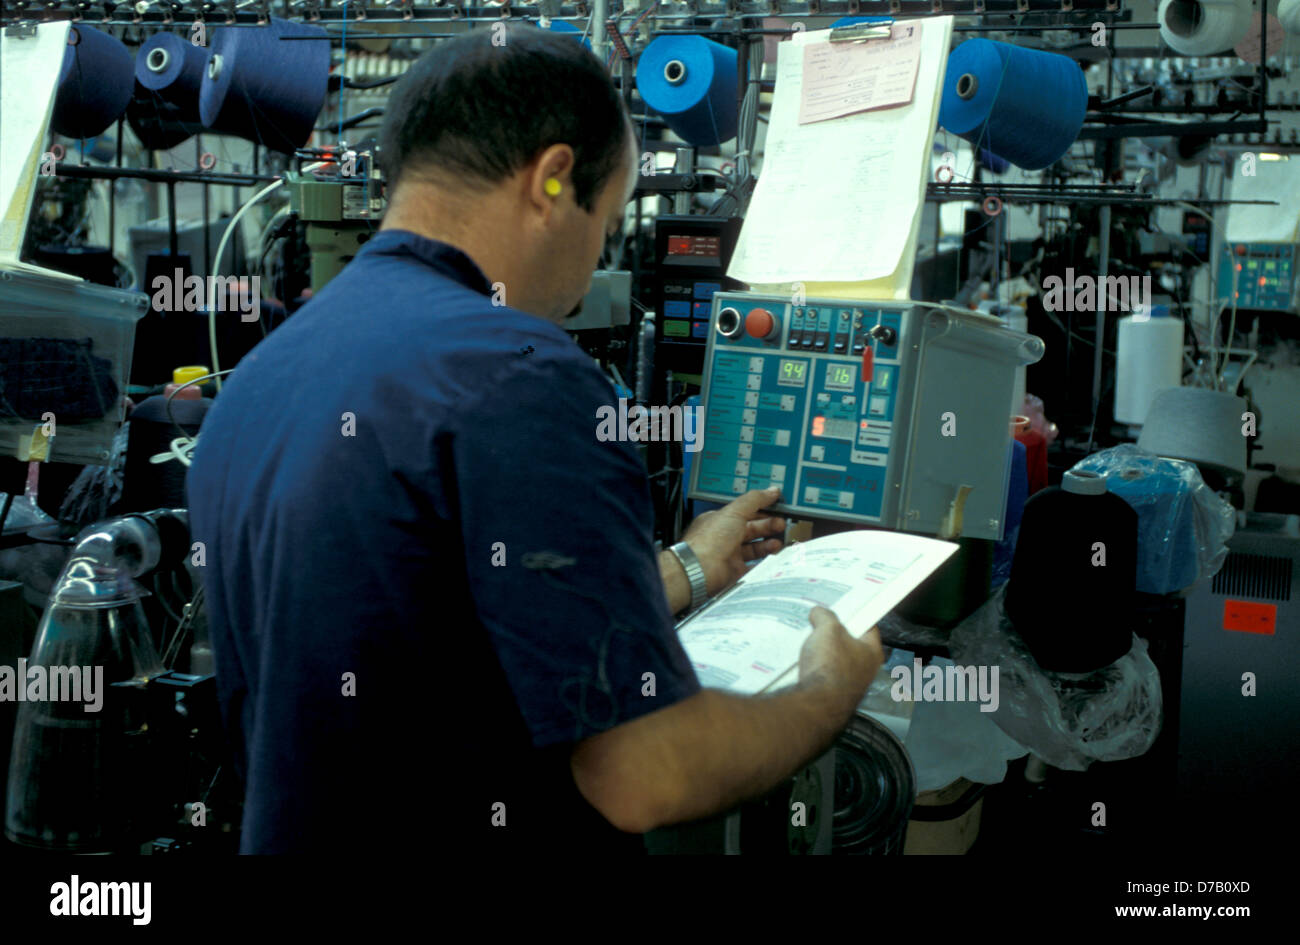 Textile production worker - Stock Image